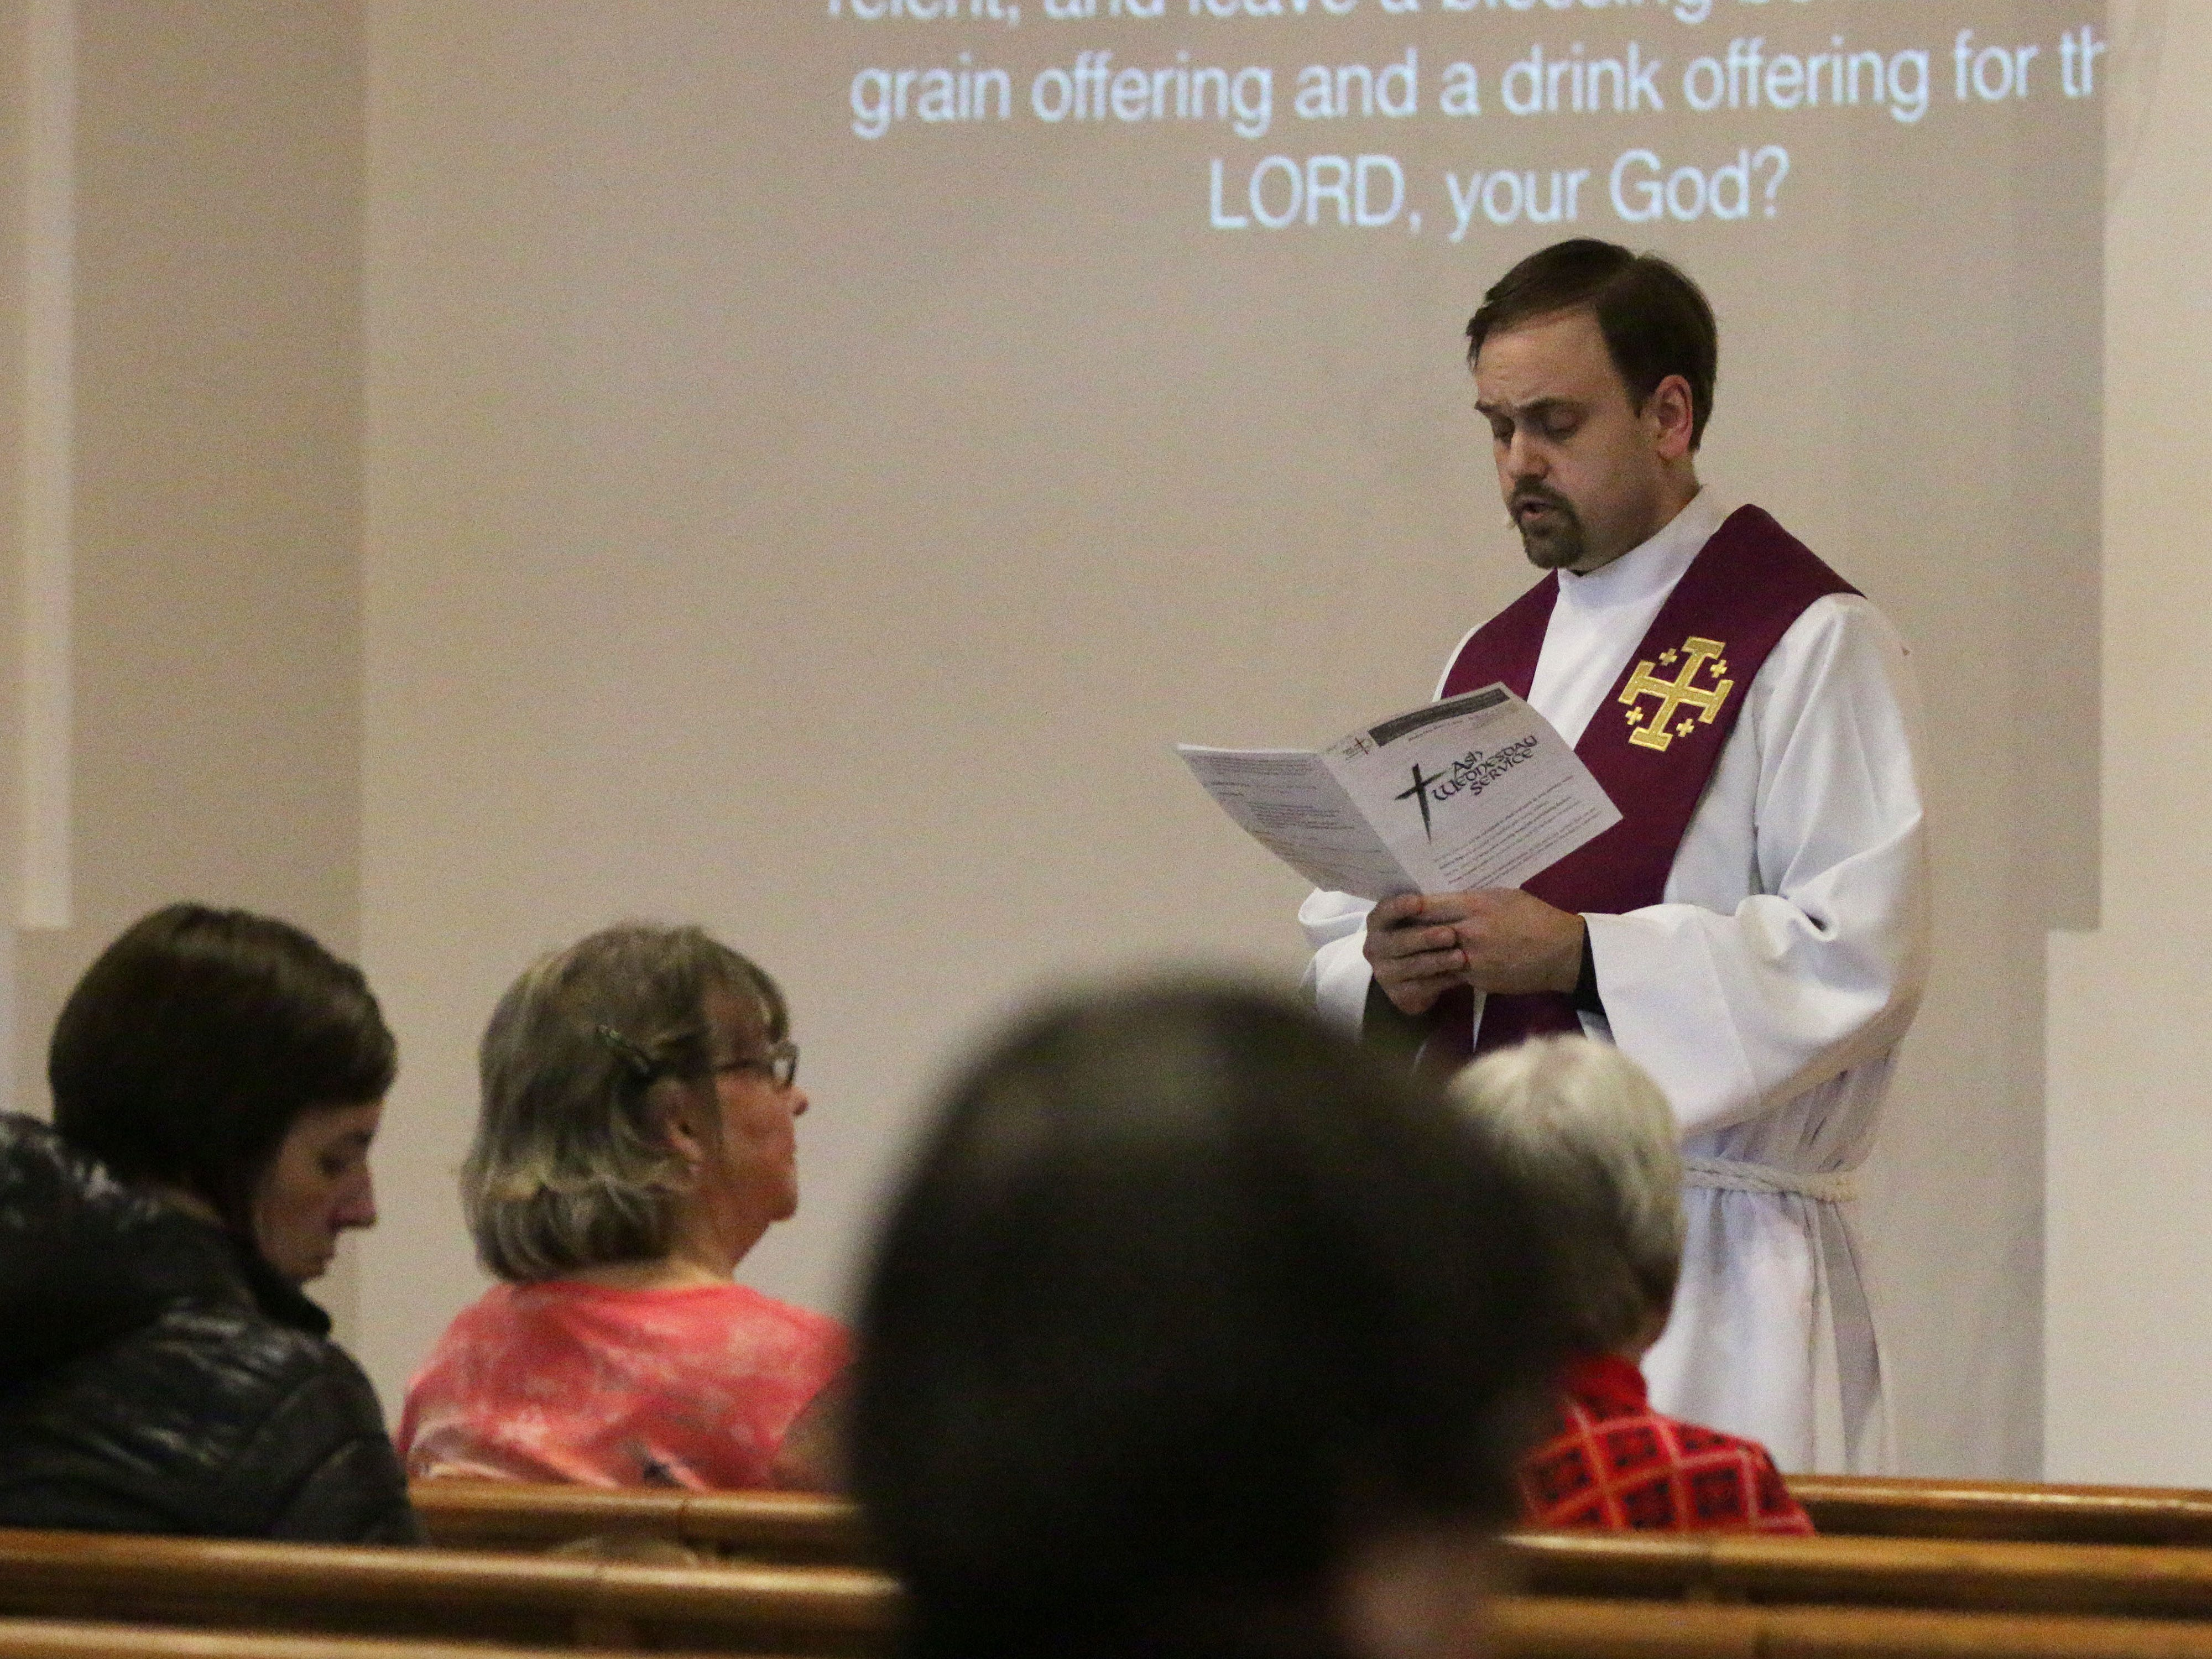 Rev. Matt Hacker reads during Ash Wednesday service at First United Lutheran Church, Wednesday, March 6, 2019, in Sheboygan, Wis.